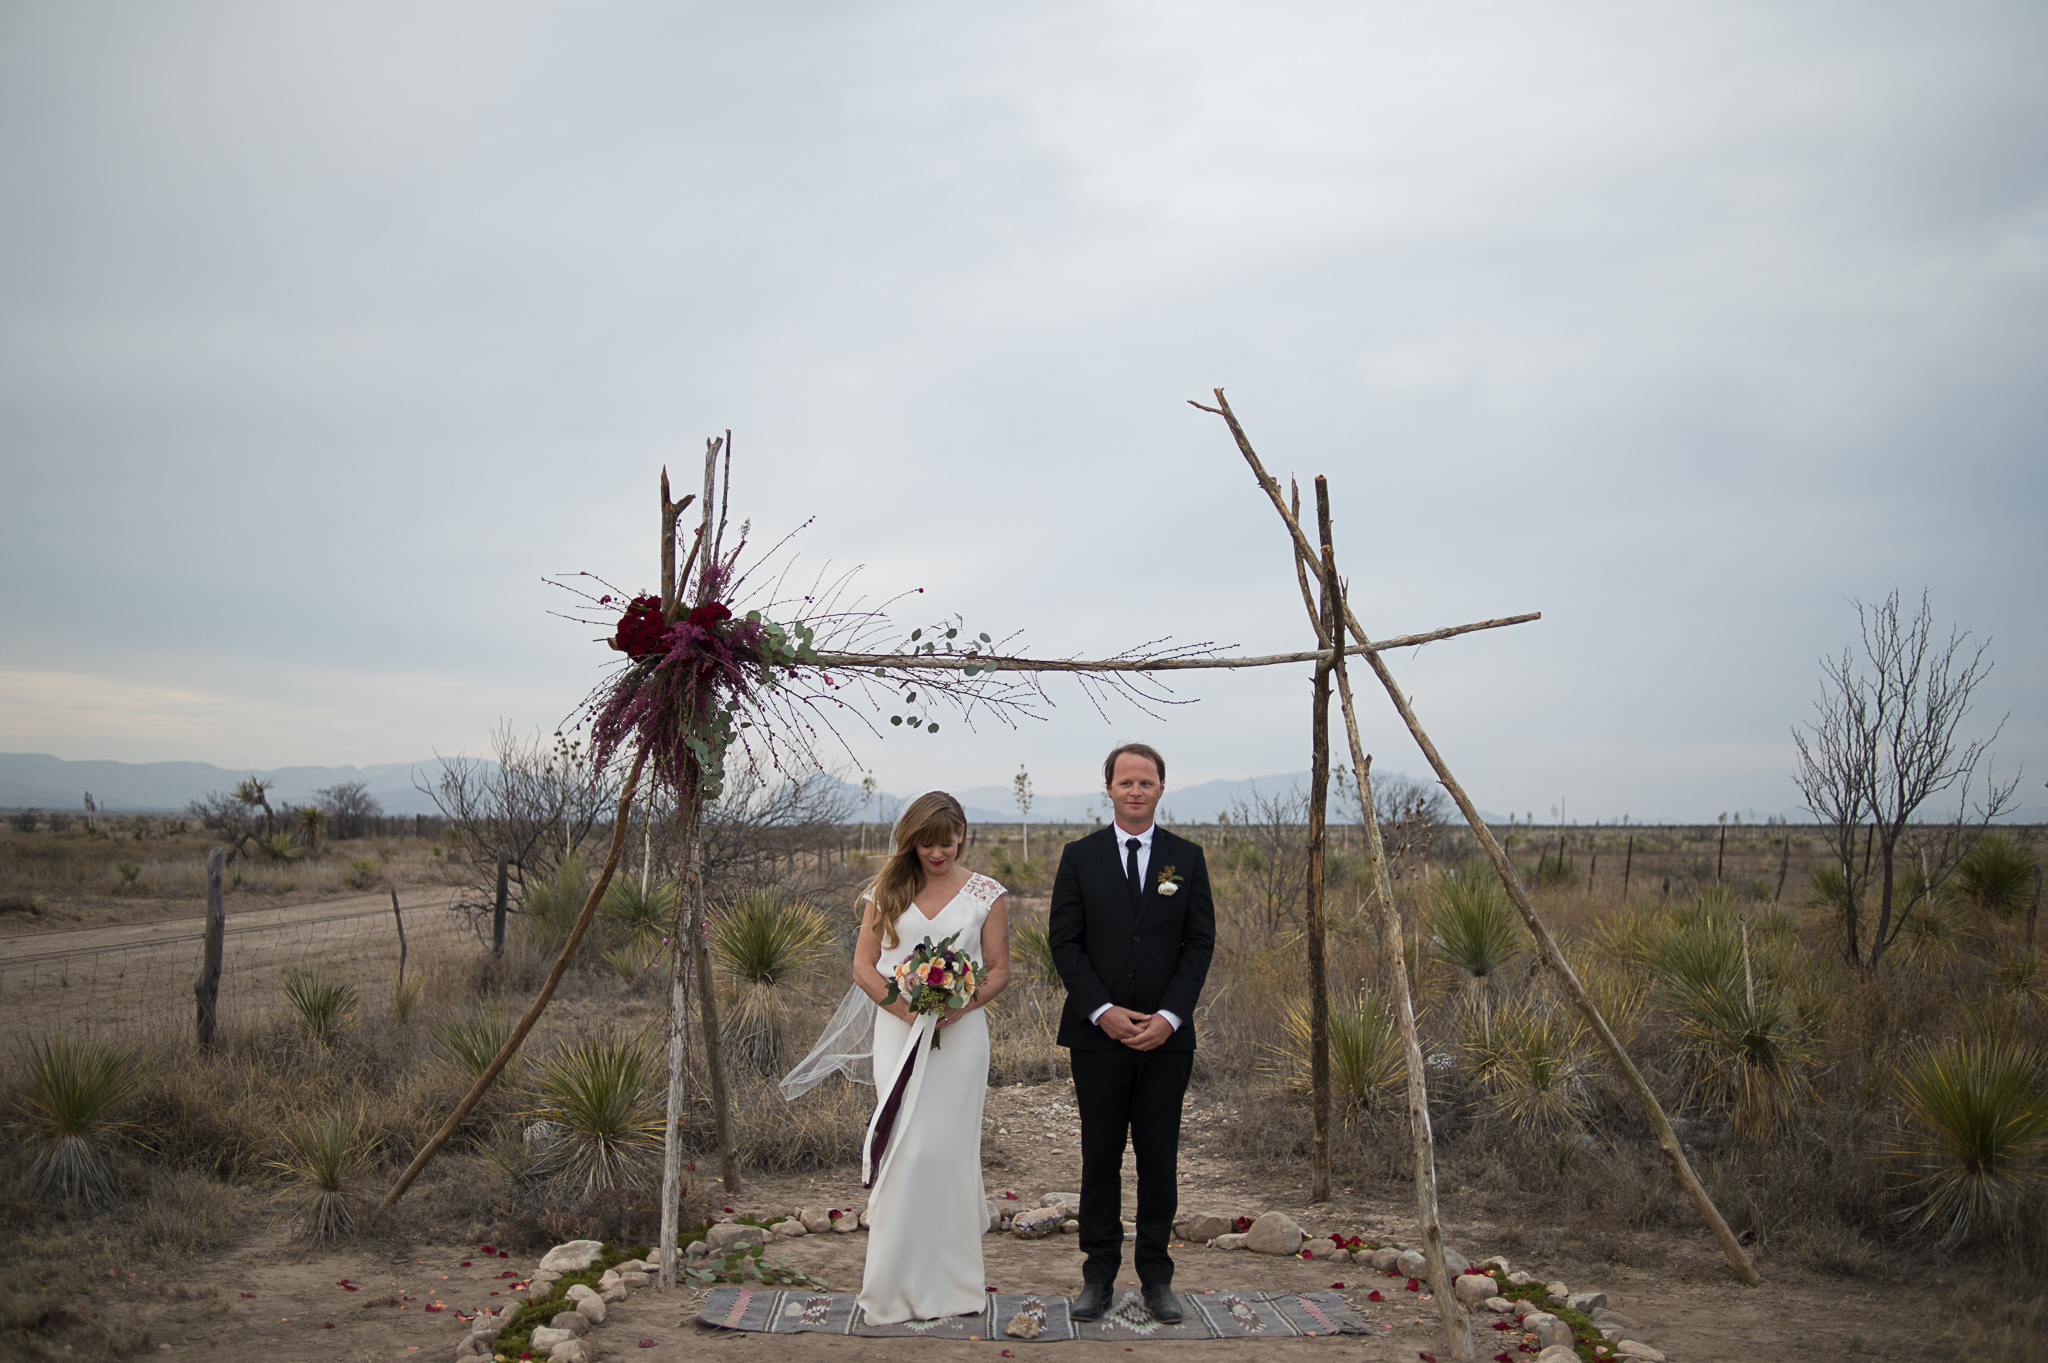 An unedited photo of a wedding couple who poses underneath a wooden arc in the desert.